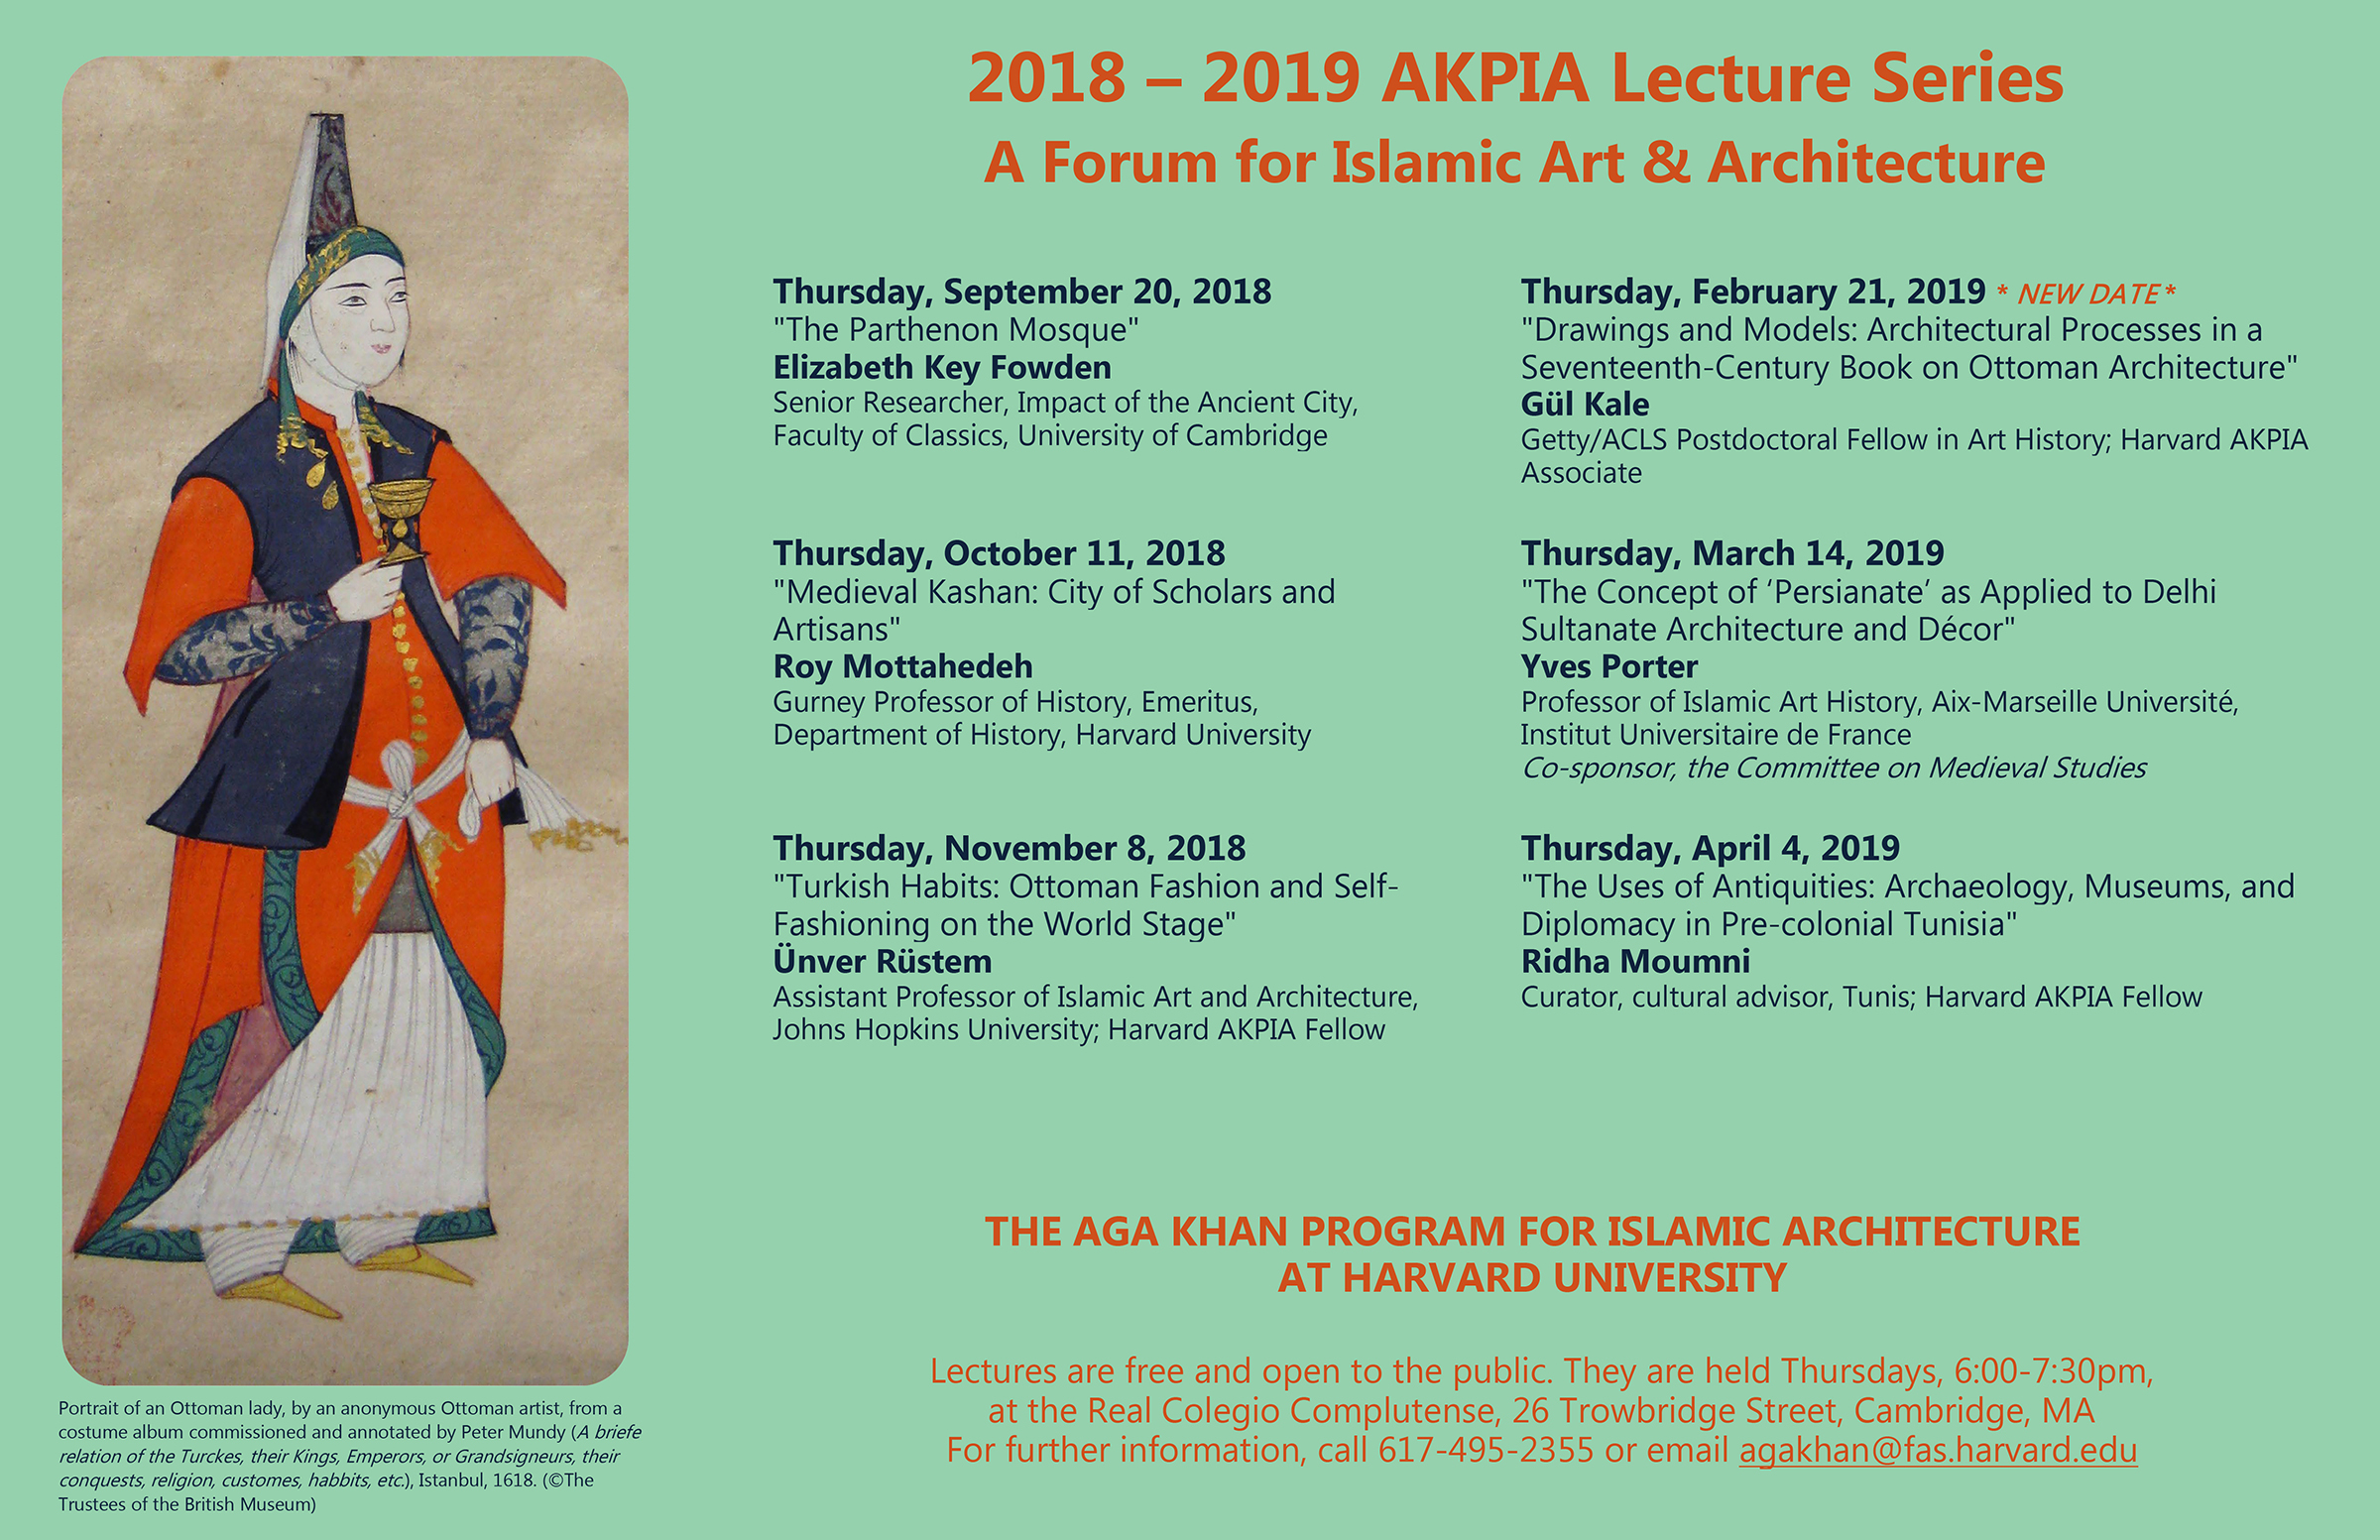 Previous Lectures | Aga Khan Program for Islamic Architecture